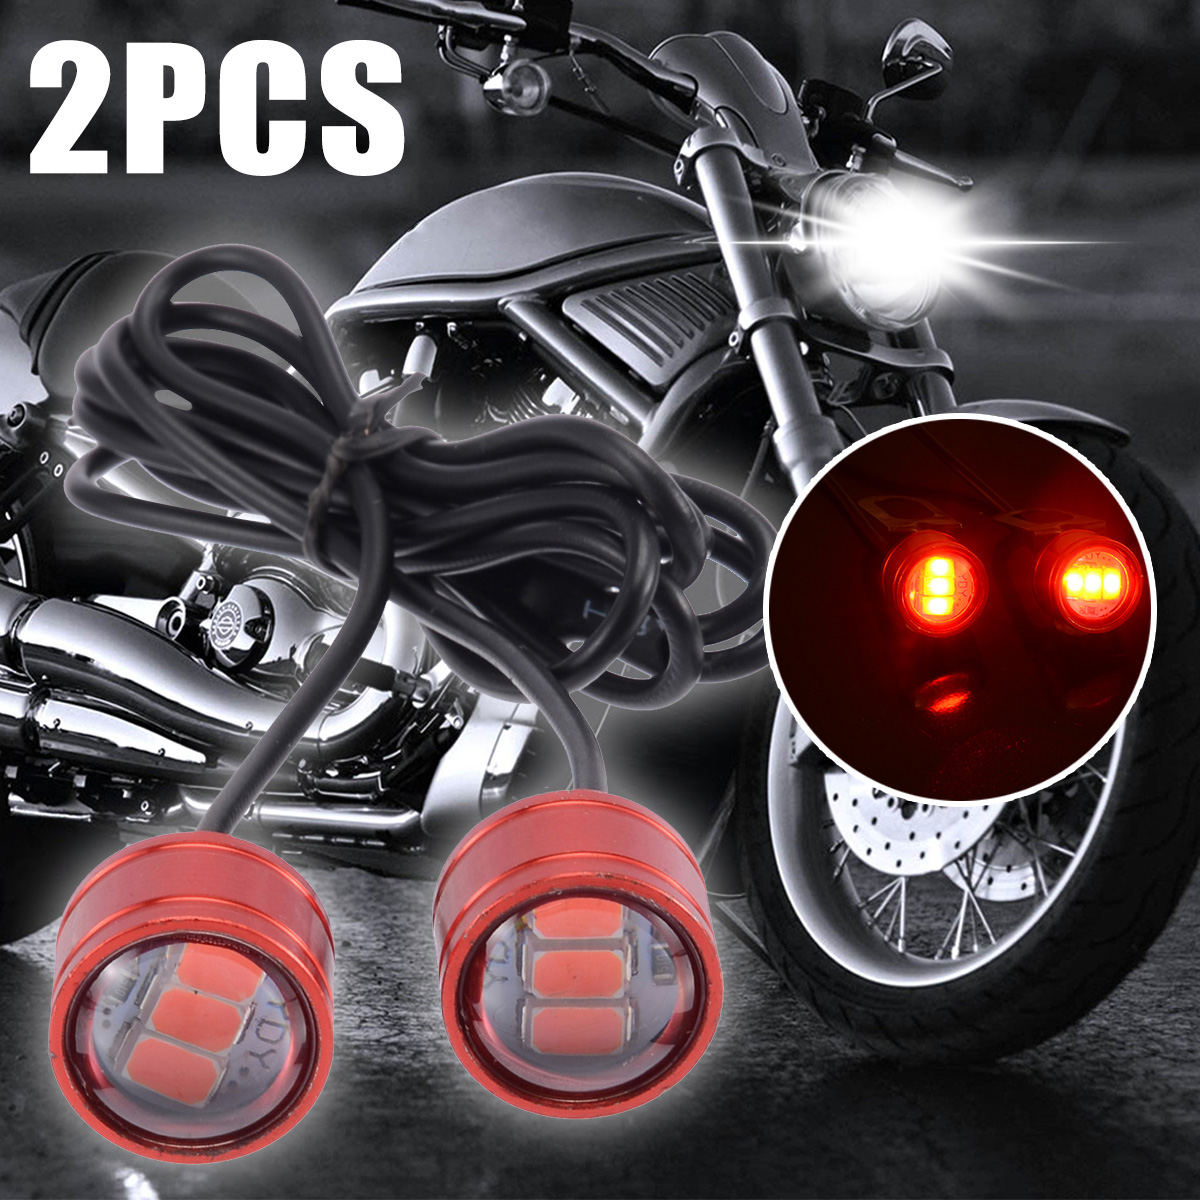 2pcs 12V 10W Motorcycle Rearview Mirror Decor Light 3LED Red Flash Strobe Lamp For ATV Scooter Off-road Decoration